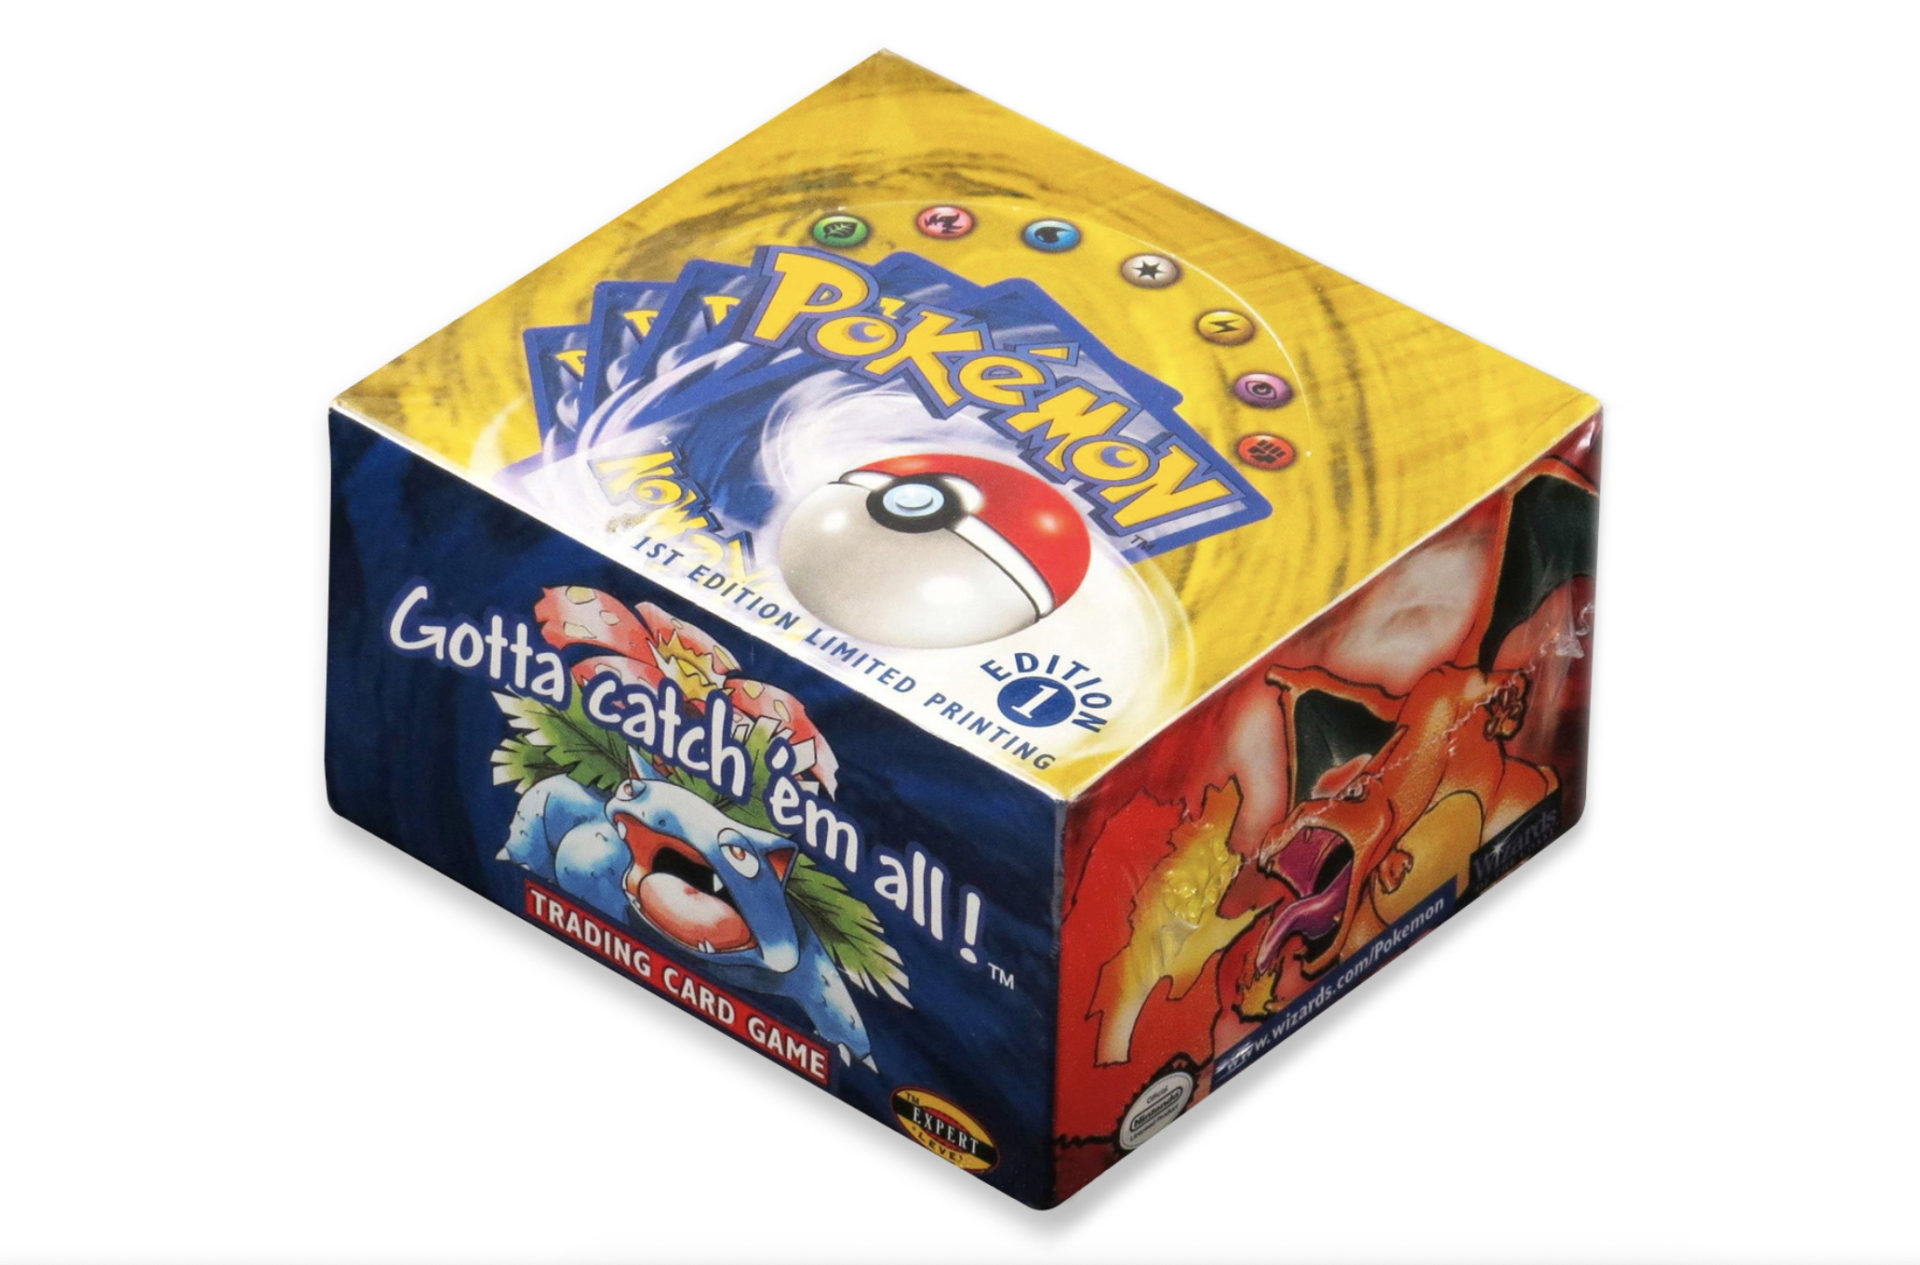 Screenshot of a 1999 1st edition booster box from the Pokemon Trading Card Game.